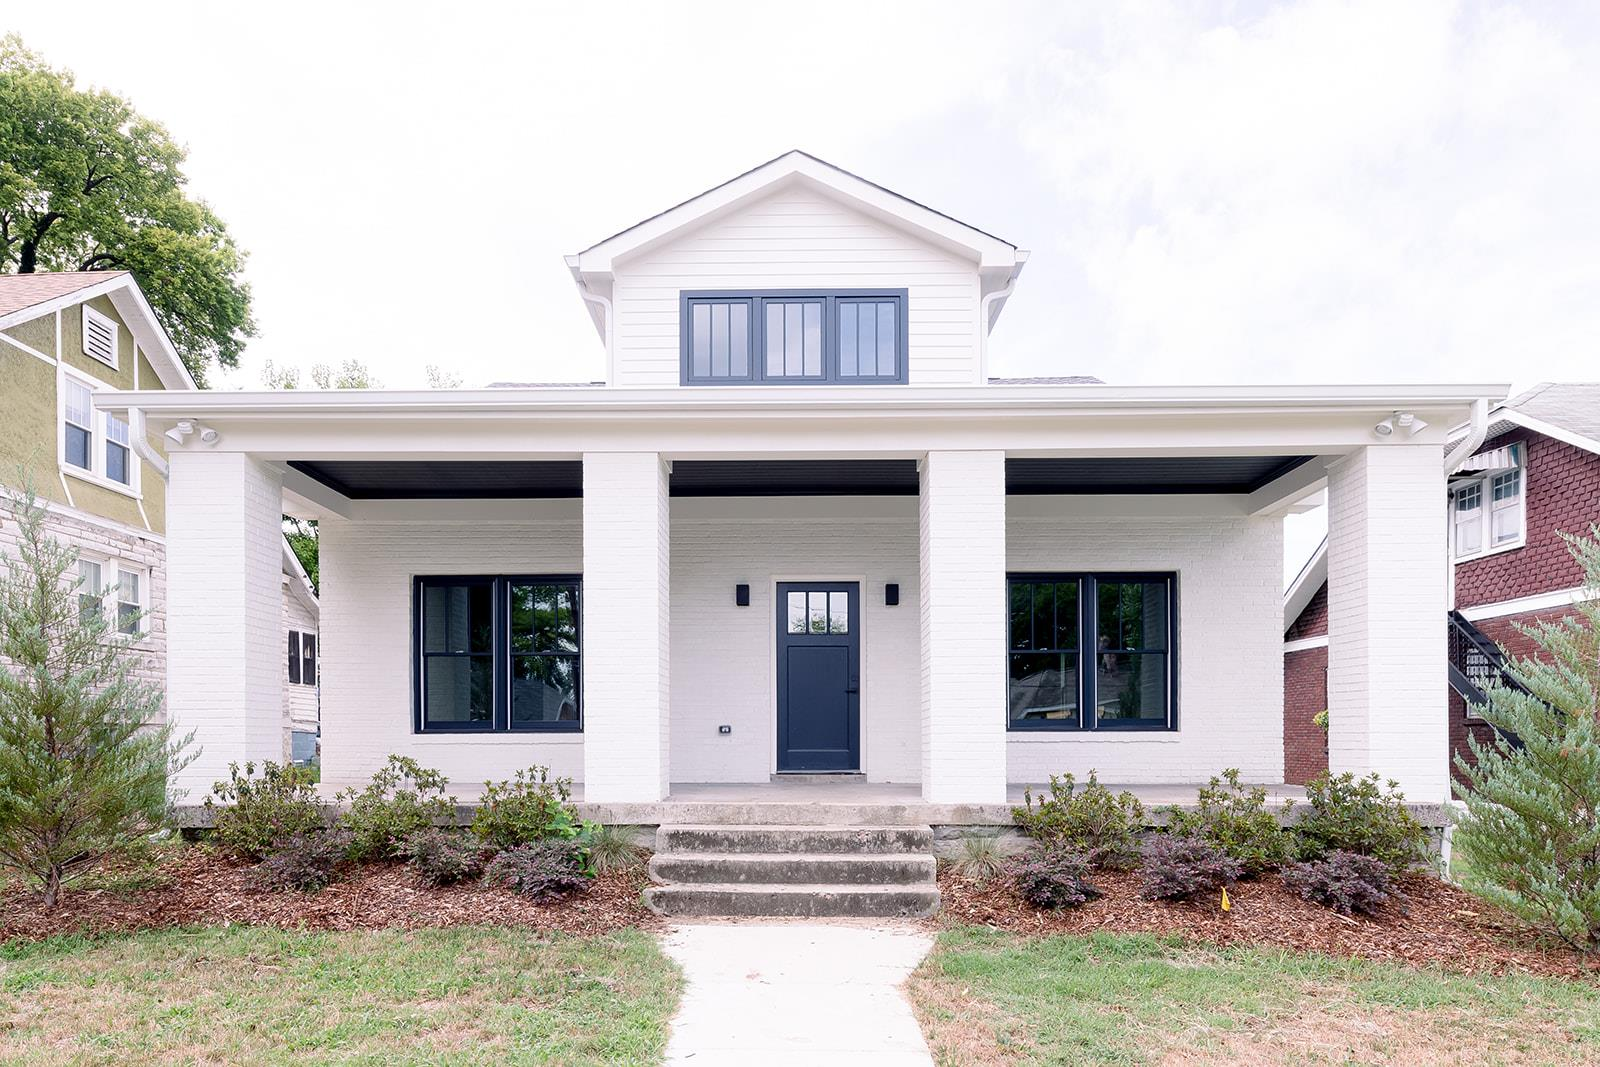 1703 Villa Pl, Nashville, TN 37212 - Nashville, TN real estate listing